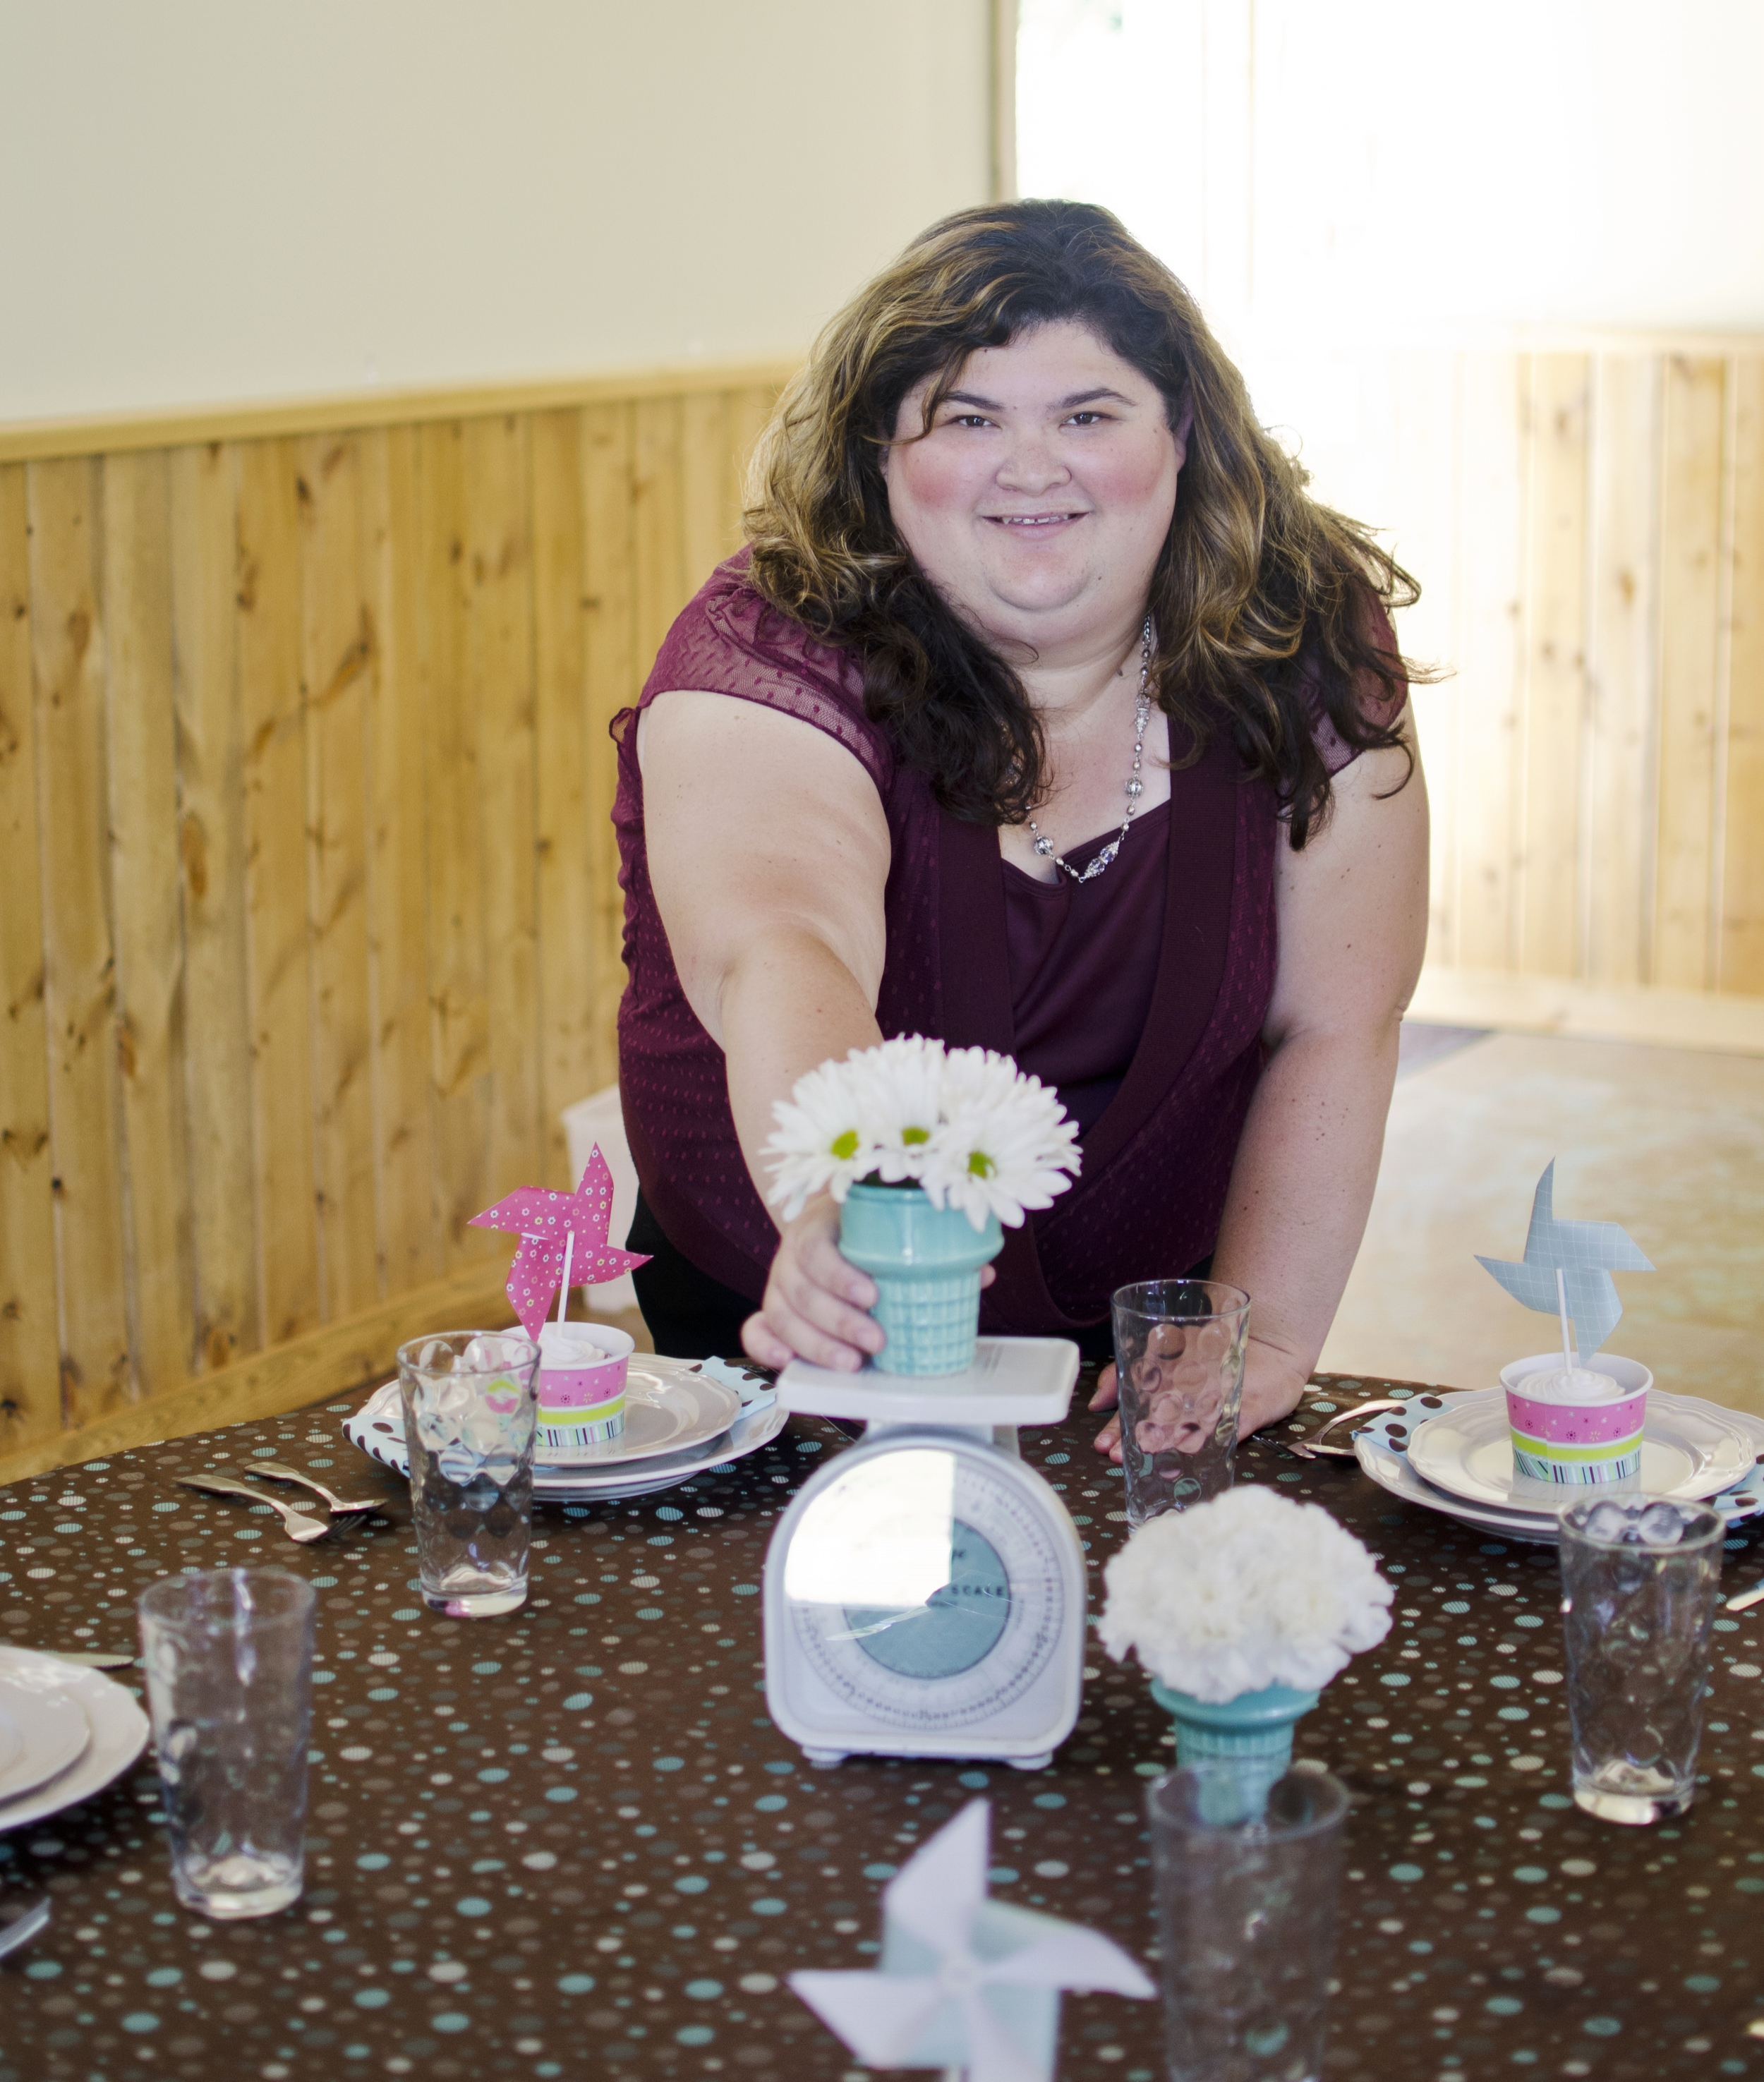 Nicole Broady - Small Business Owner, Party Planner, Wedding Coordinator, & Chronic Volunteer